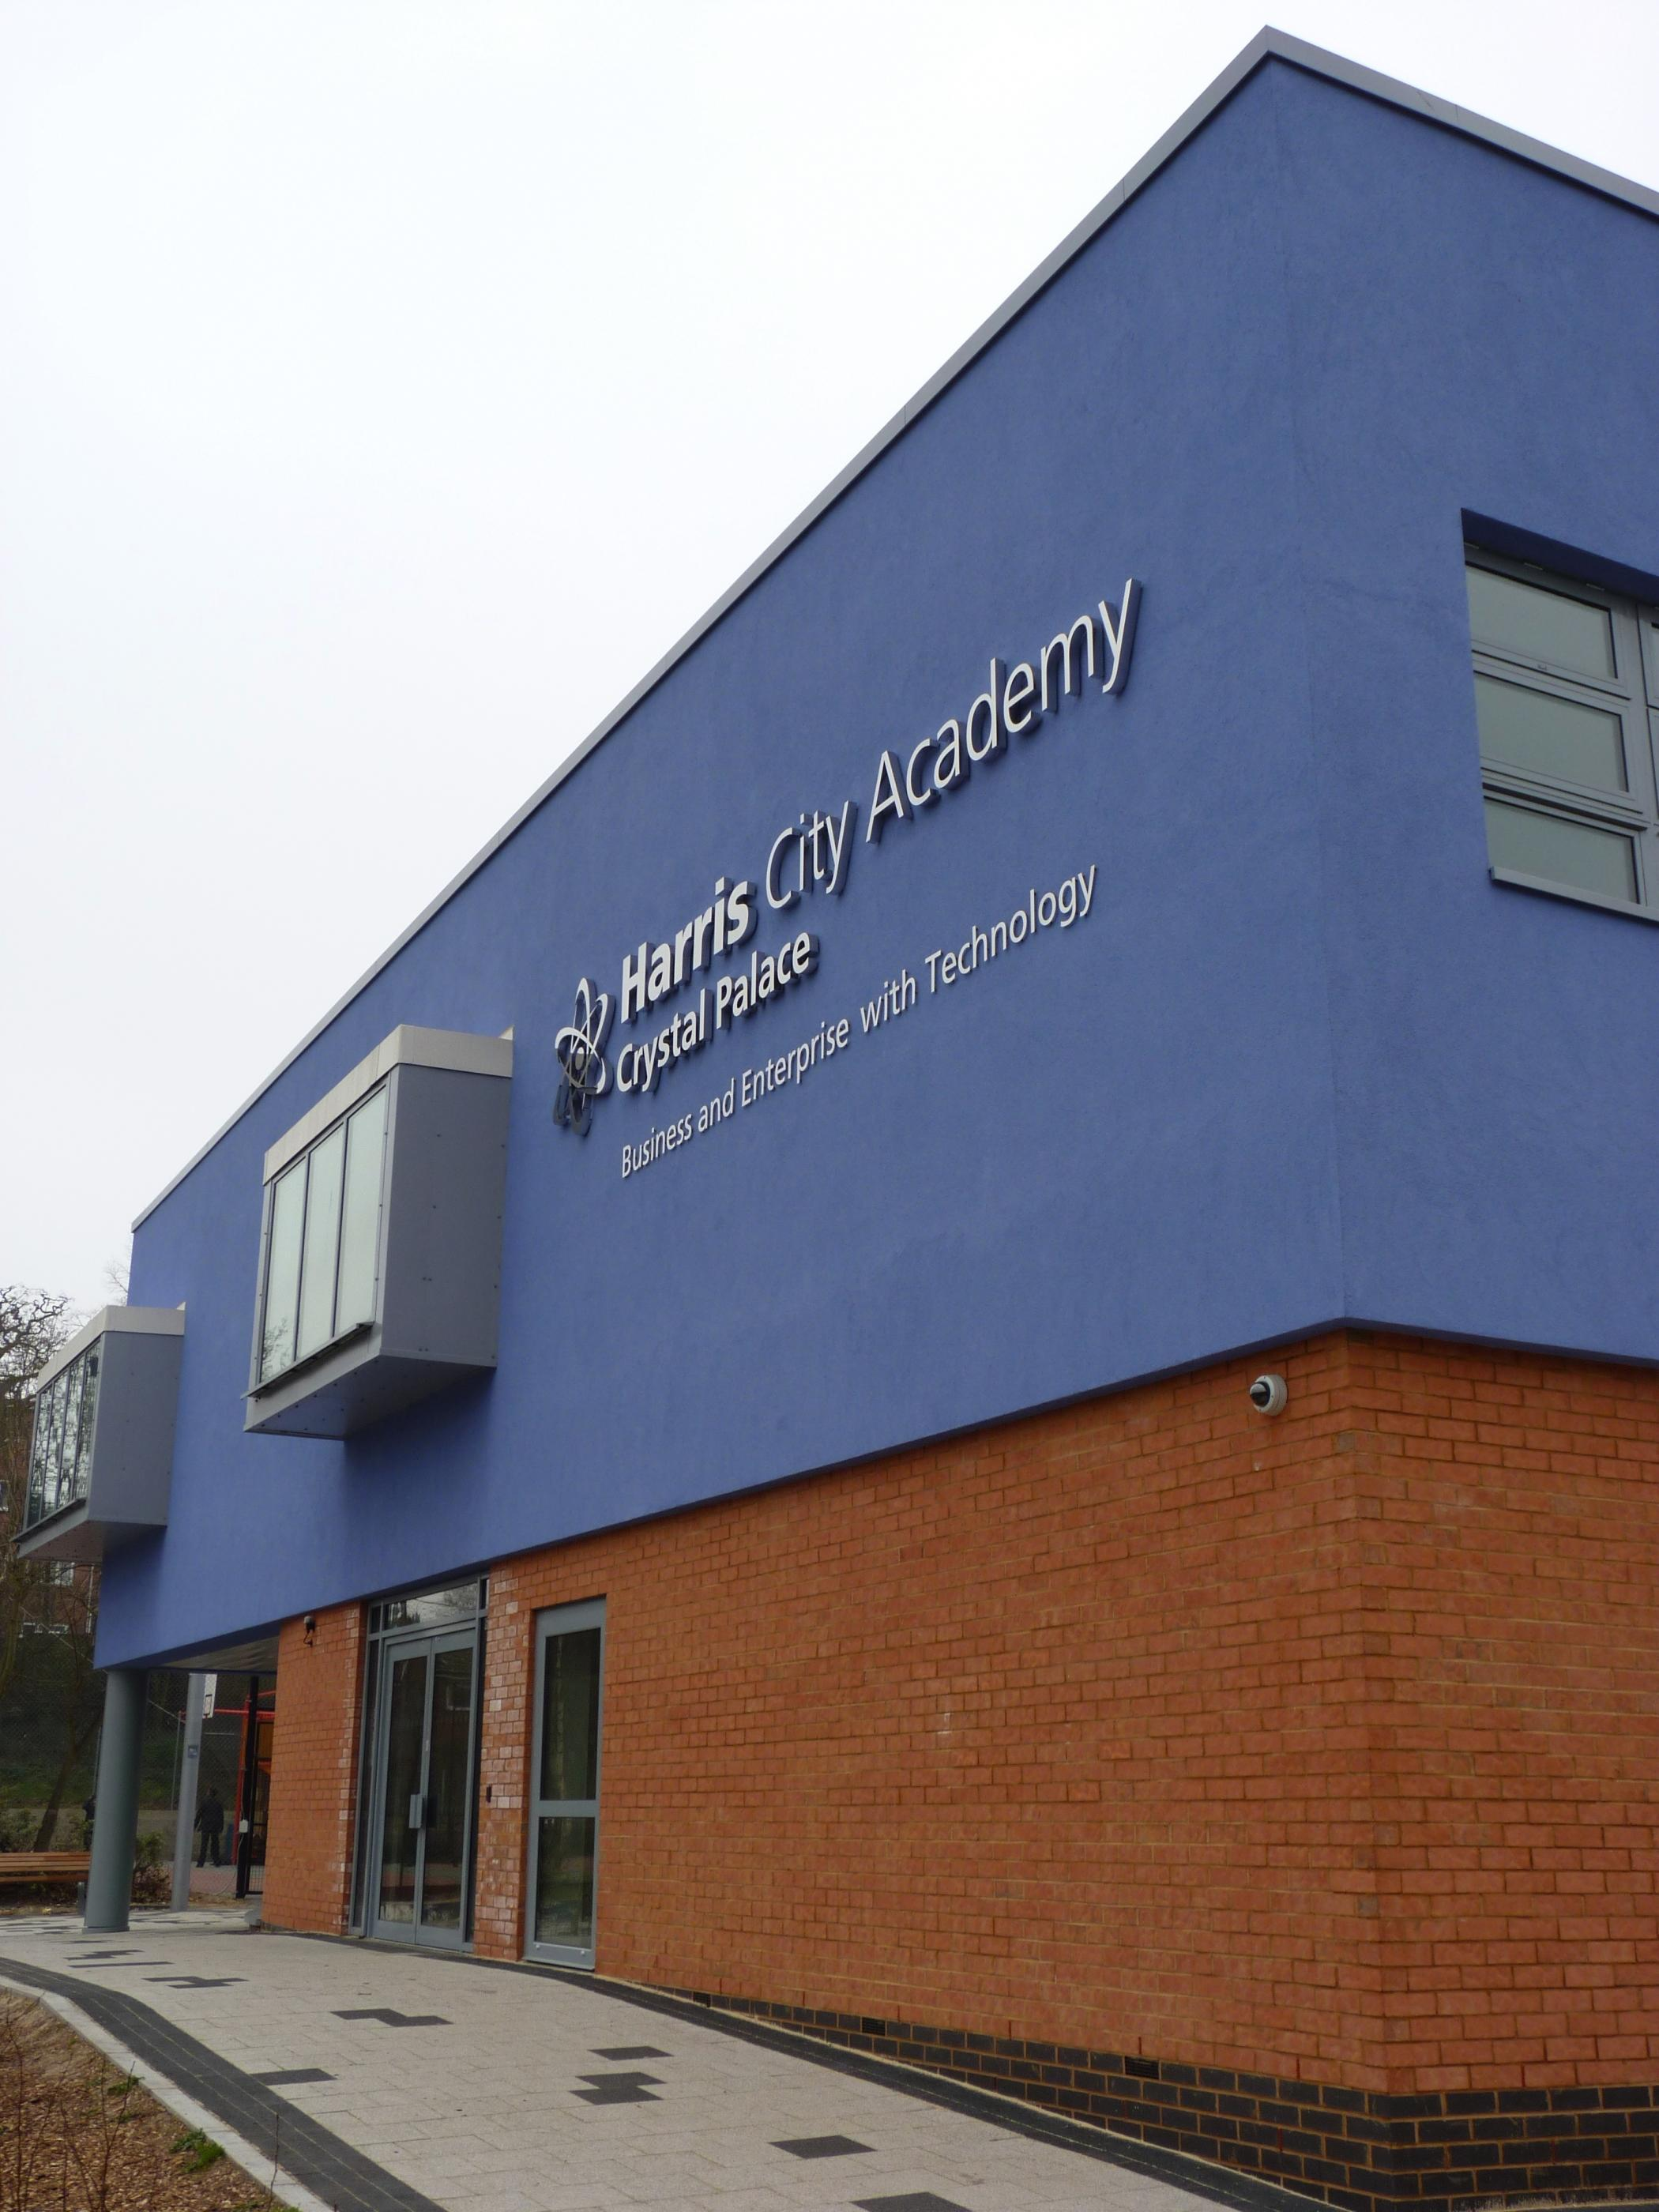 harris city academy crystal palace hl architects in